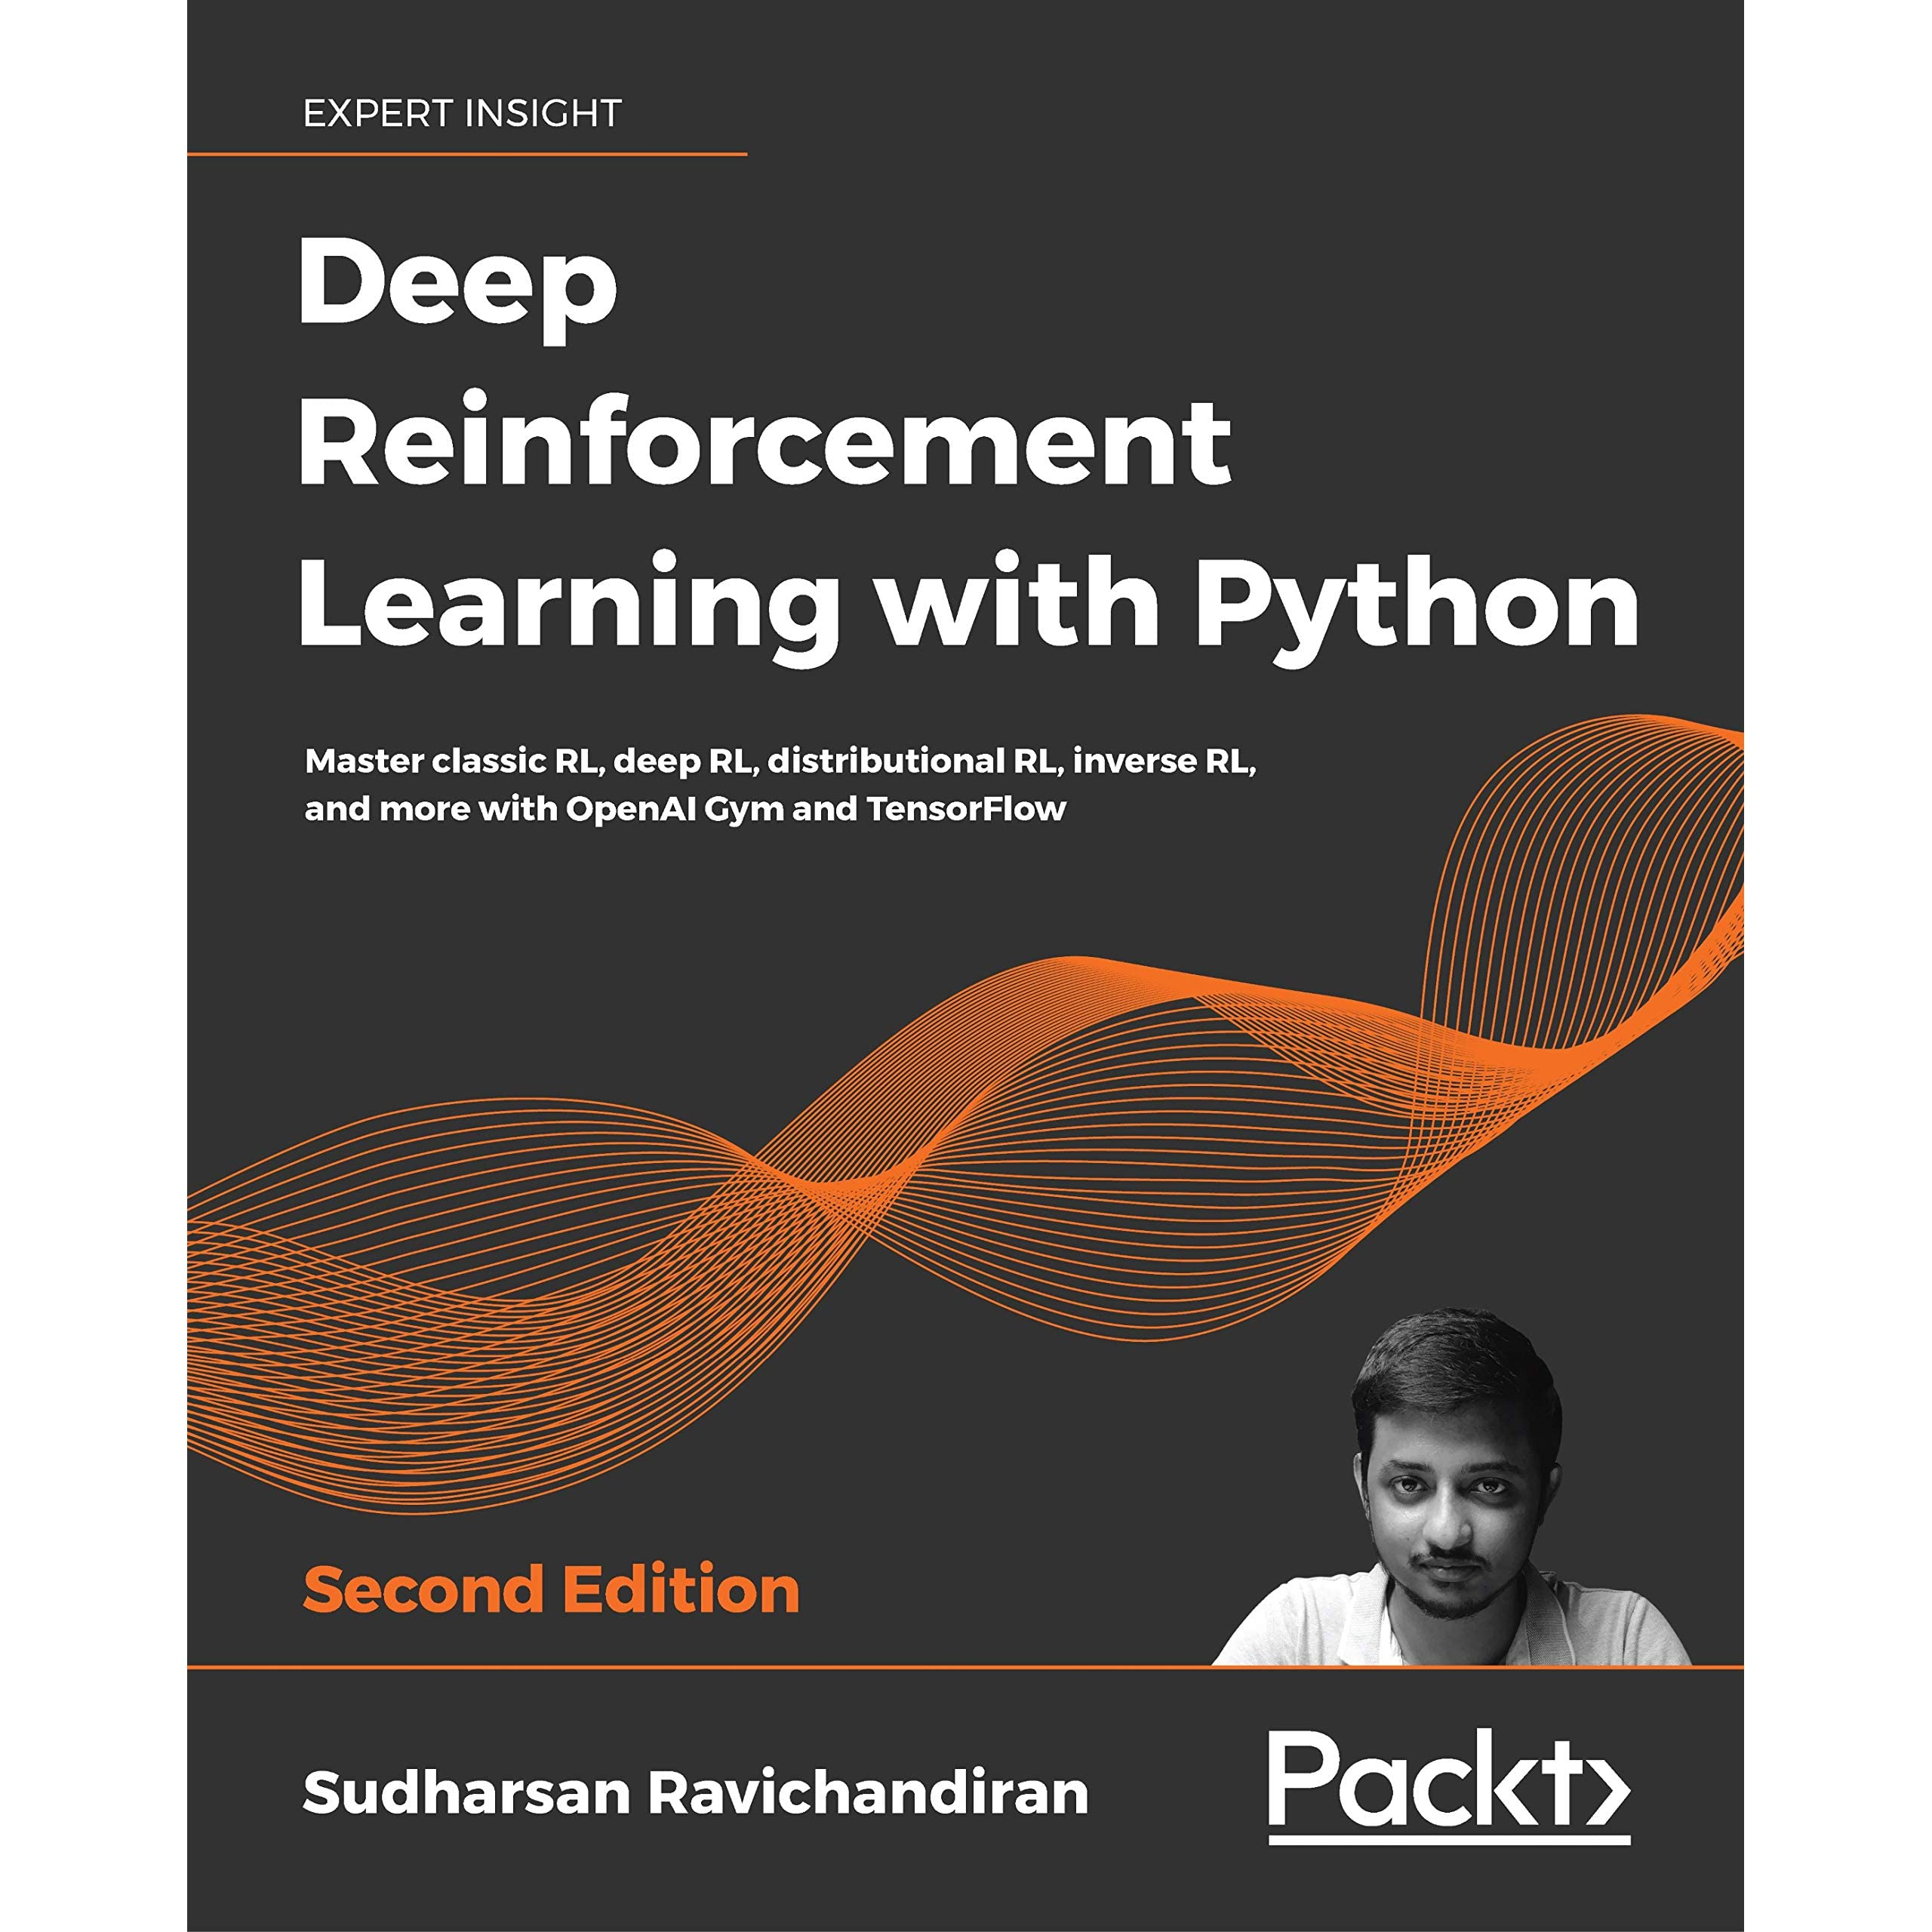 Deep Reinforcement Learning with Python: Master classic RL, deep RL,  distributional RL, inverse RL, and more with OpenAI Gym and TensorFlow, 2nd  Edition by Sudharsan Ravichandiran